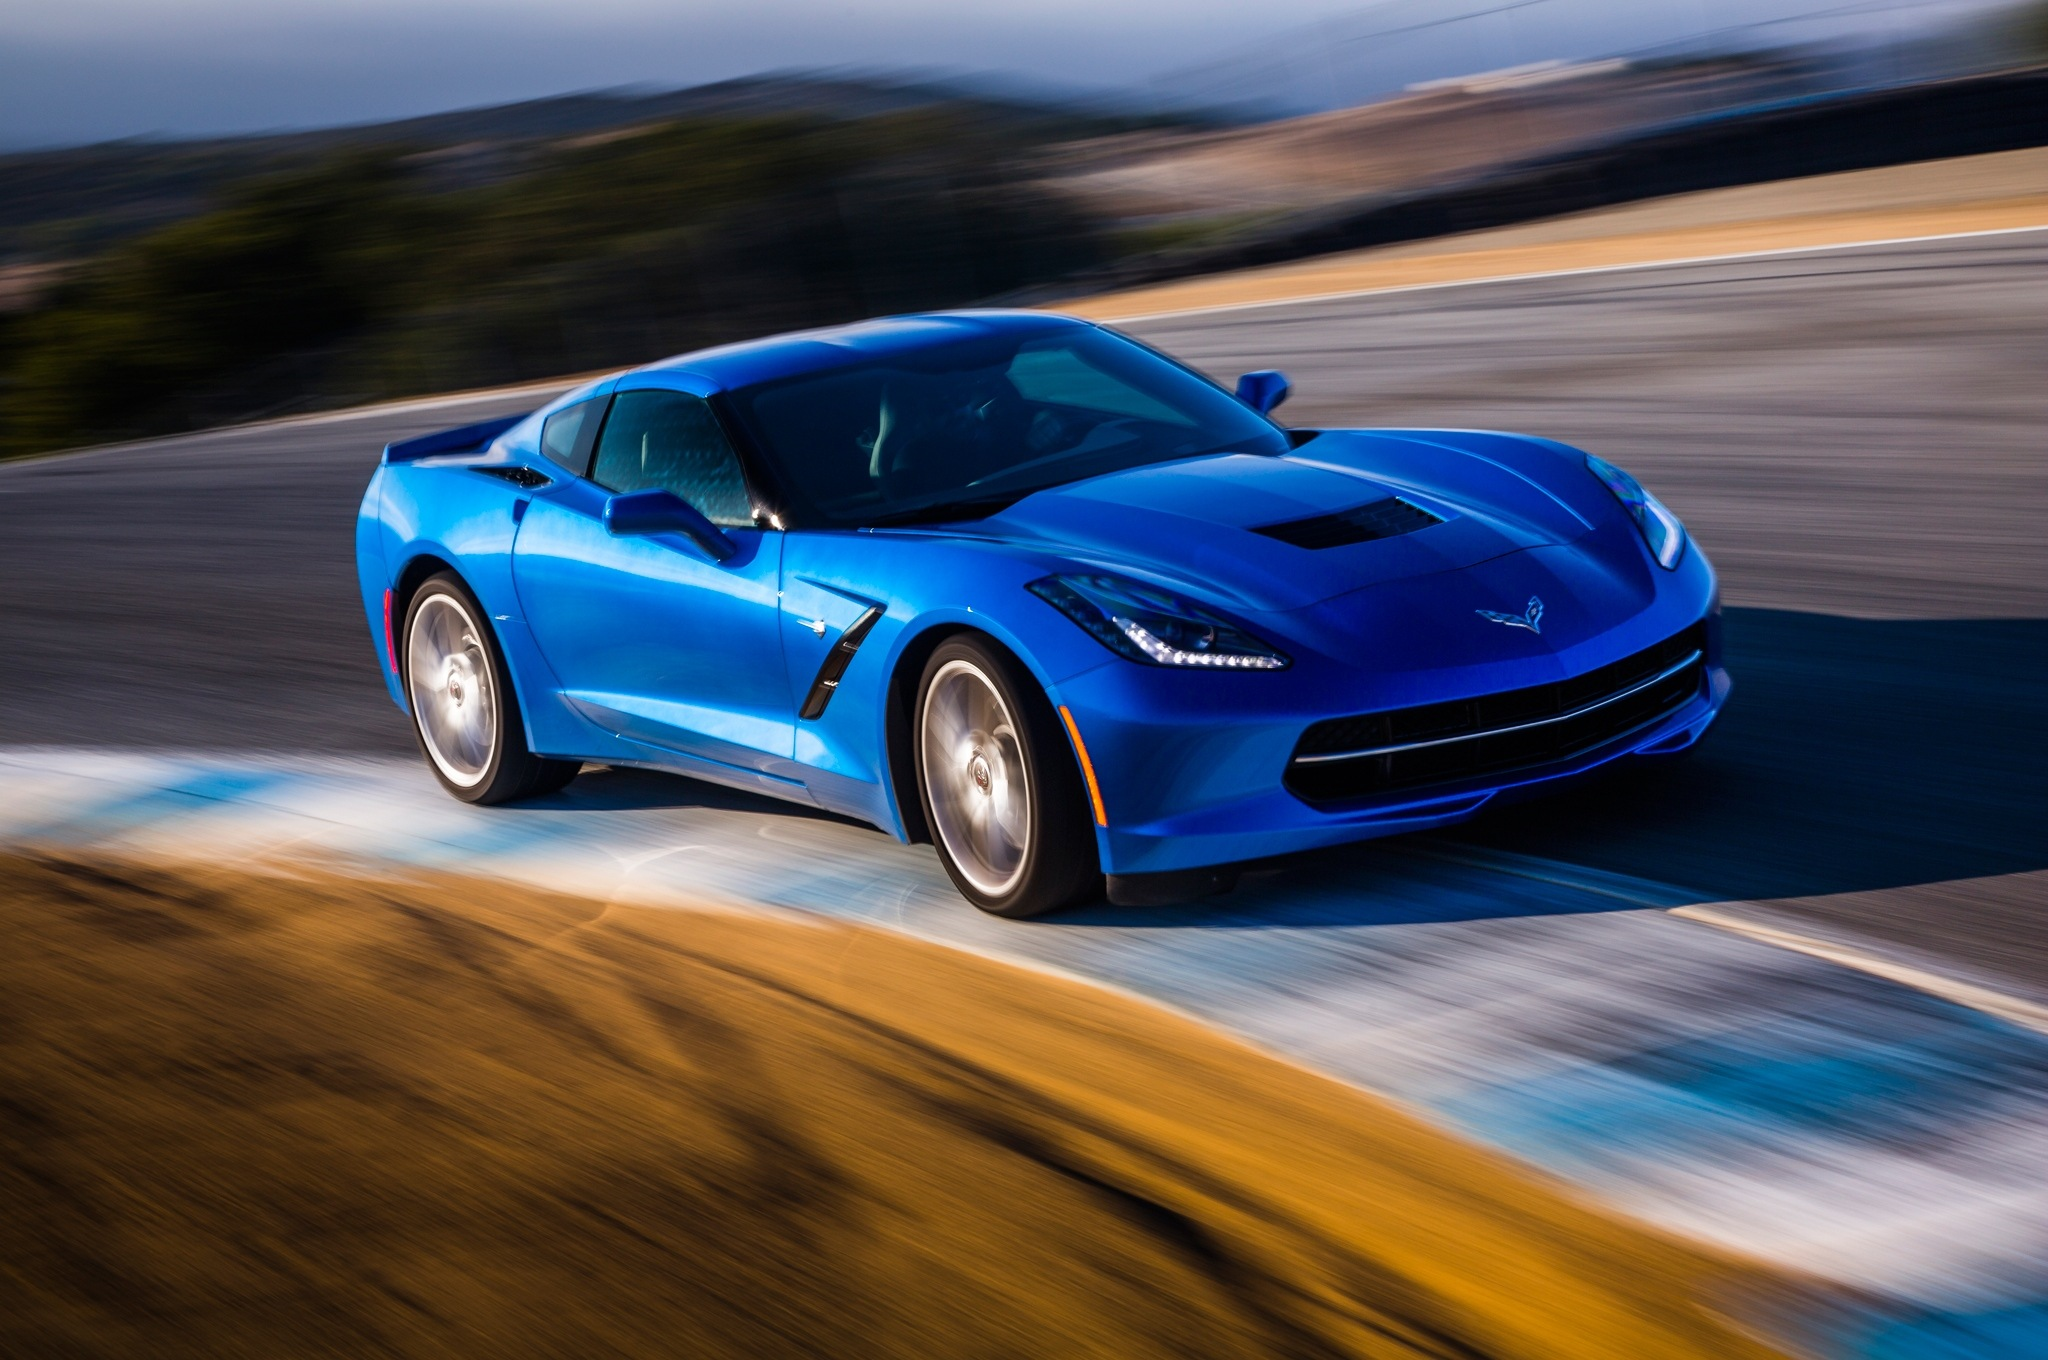 2014-Chevrolet-Corvette-Stingray-z51-front-end-in-motion